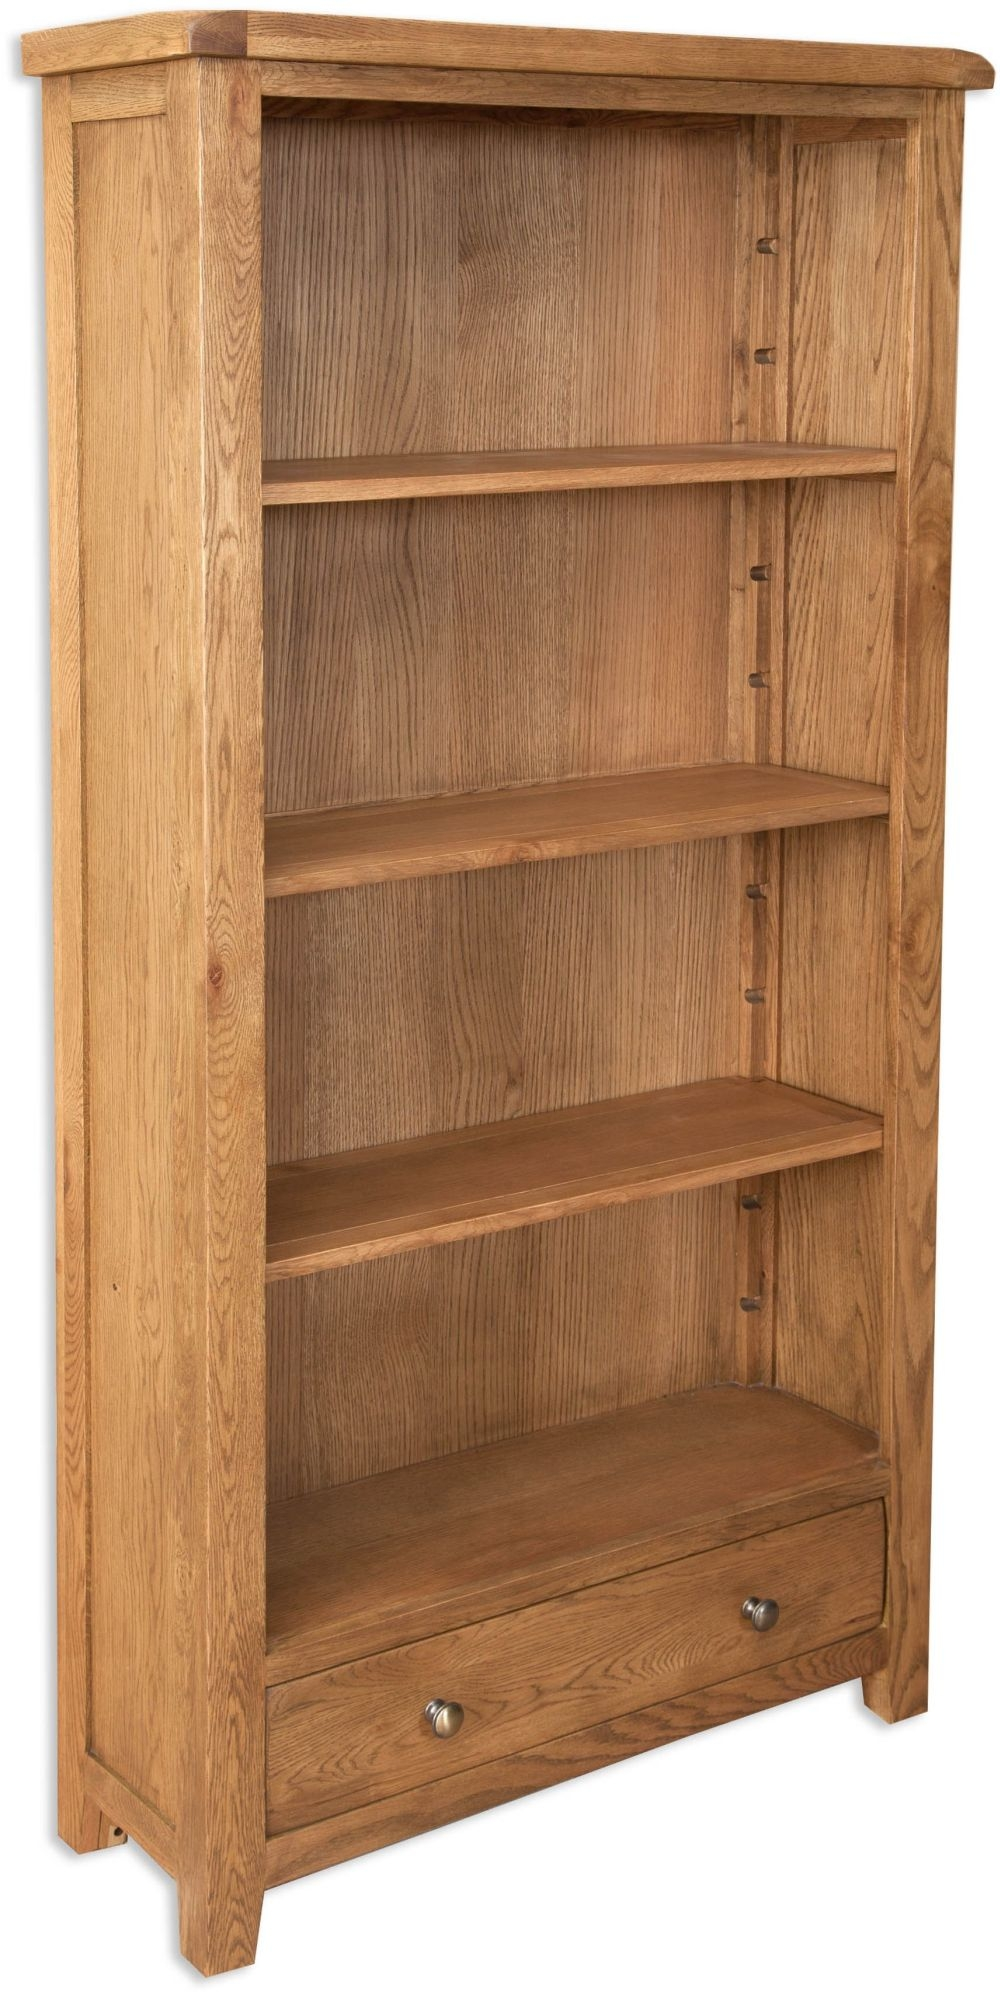 Perth Country Oak Bookcase - Large